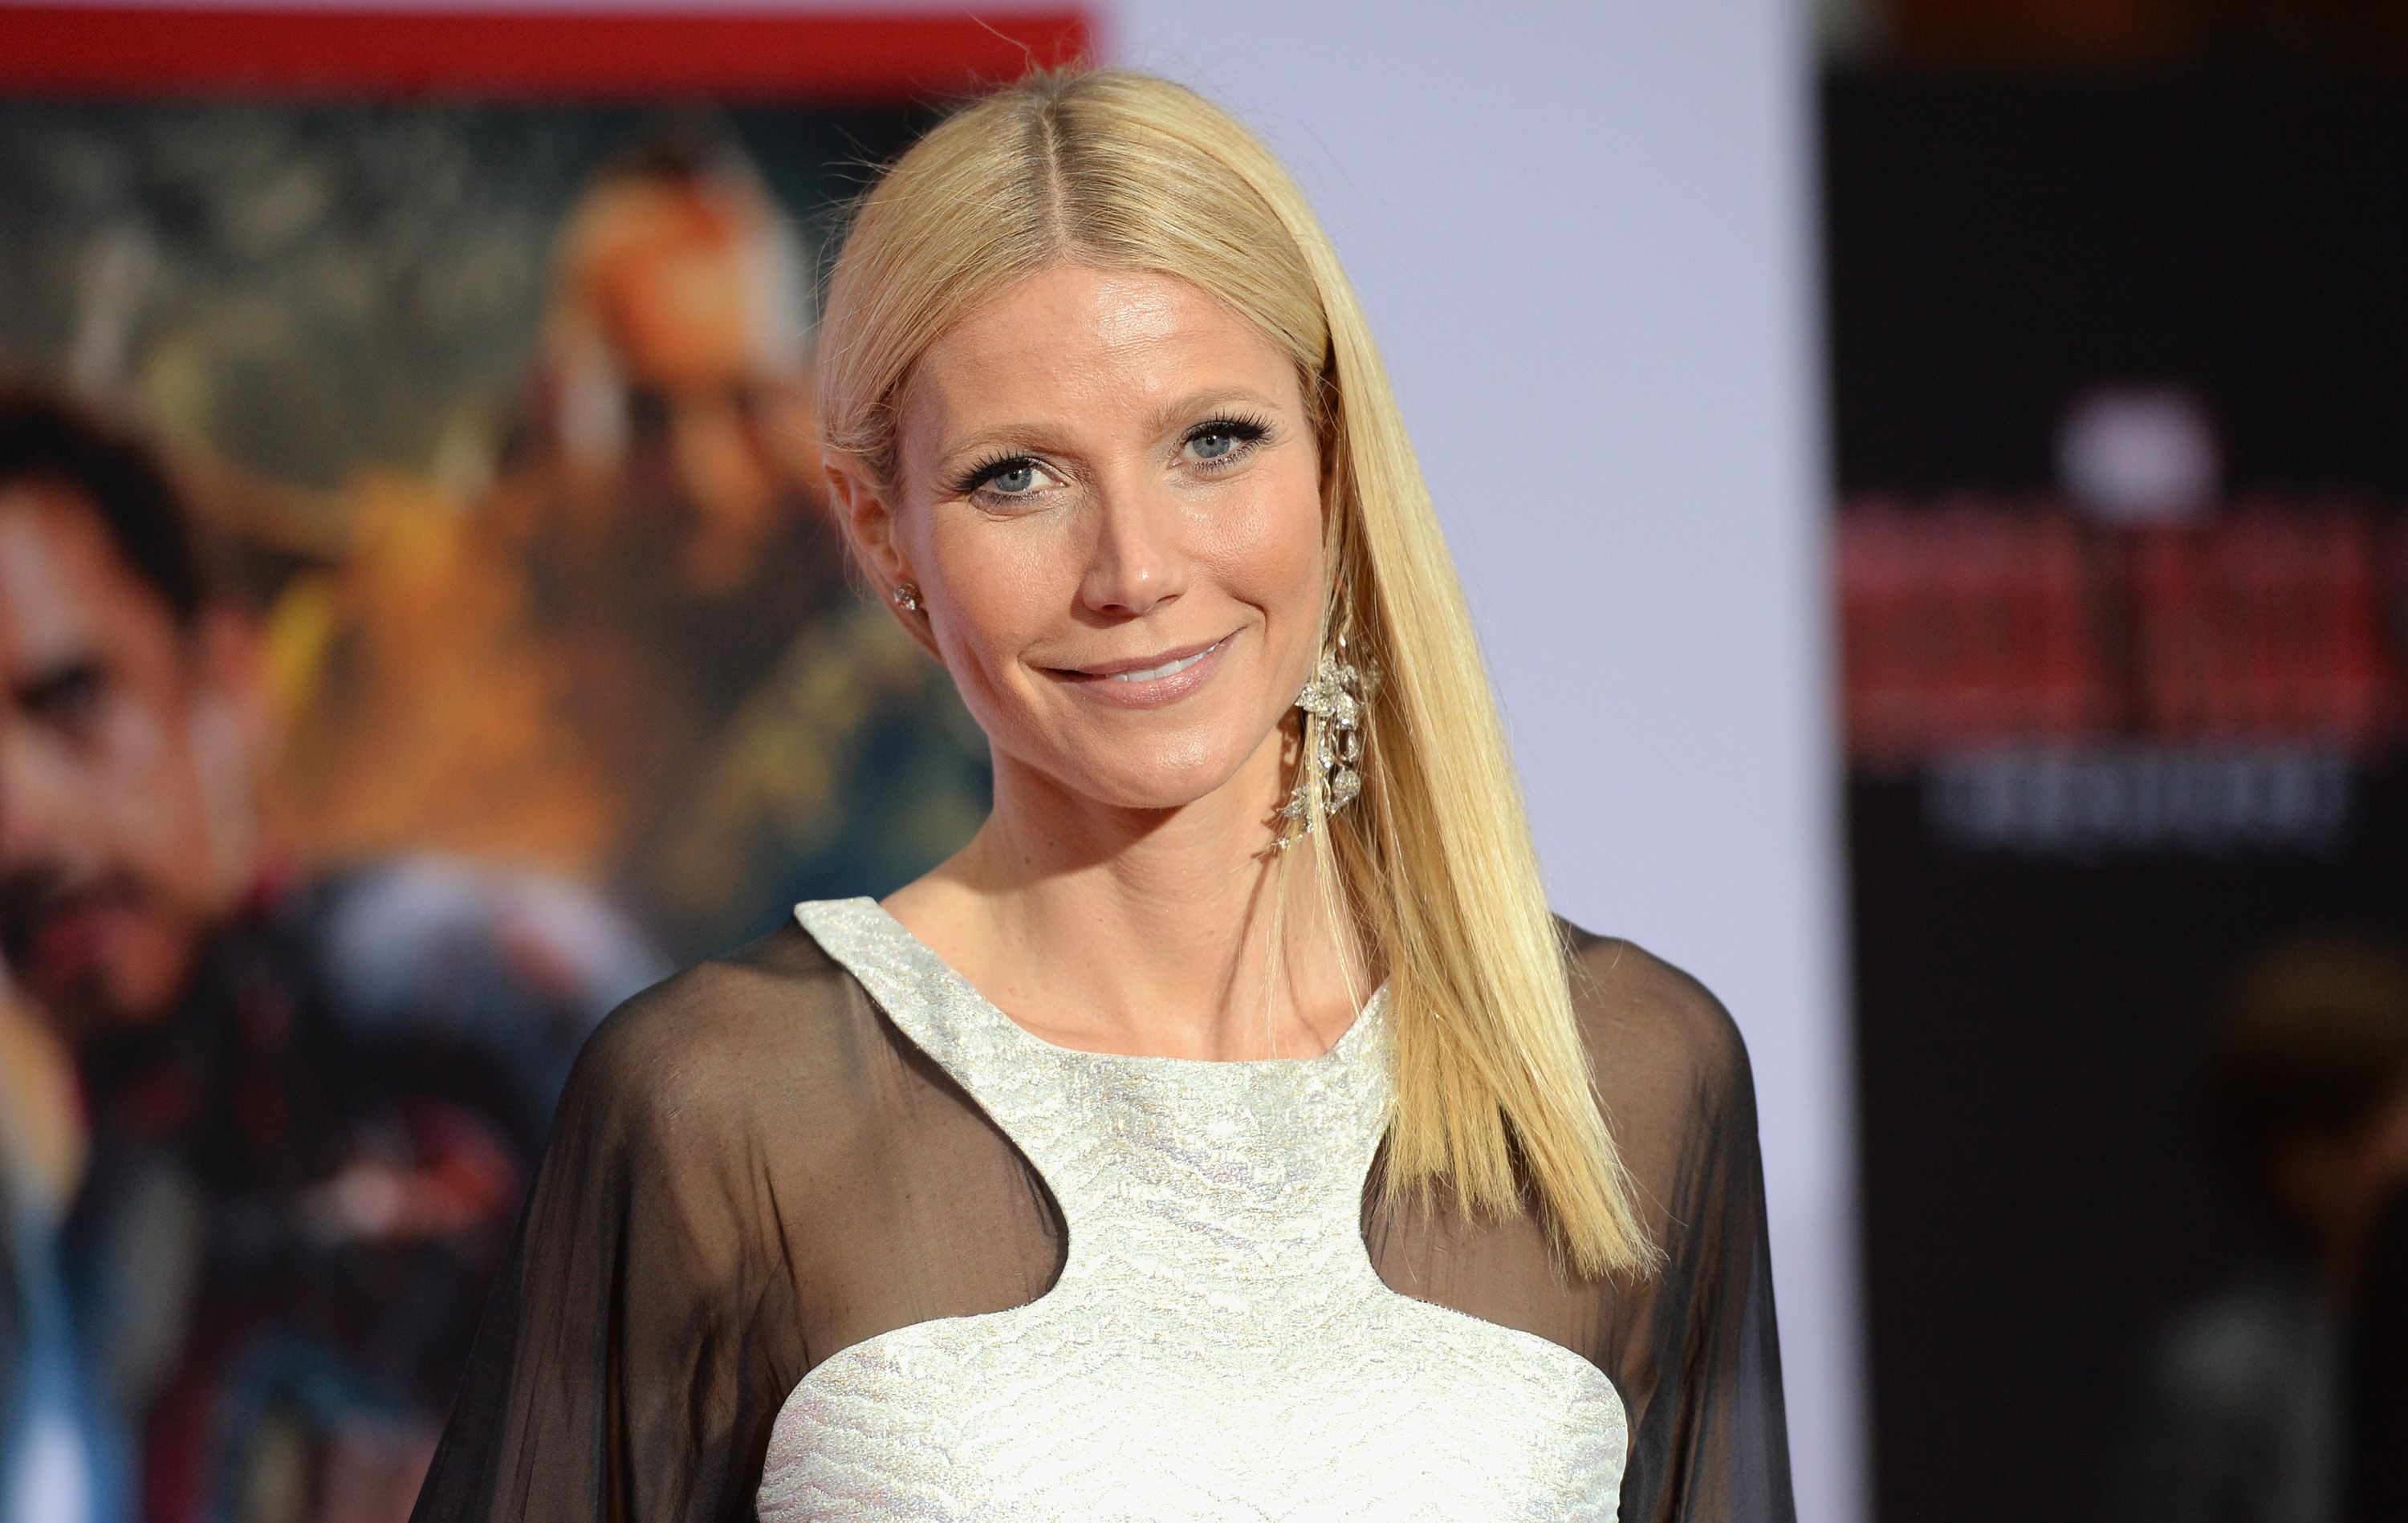 """Gwyneth Paltrow at the premiere of """"Iron Man 3"""" at the El Capitan Theatre on April 24, 2013, in Hollywood, California 